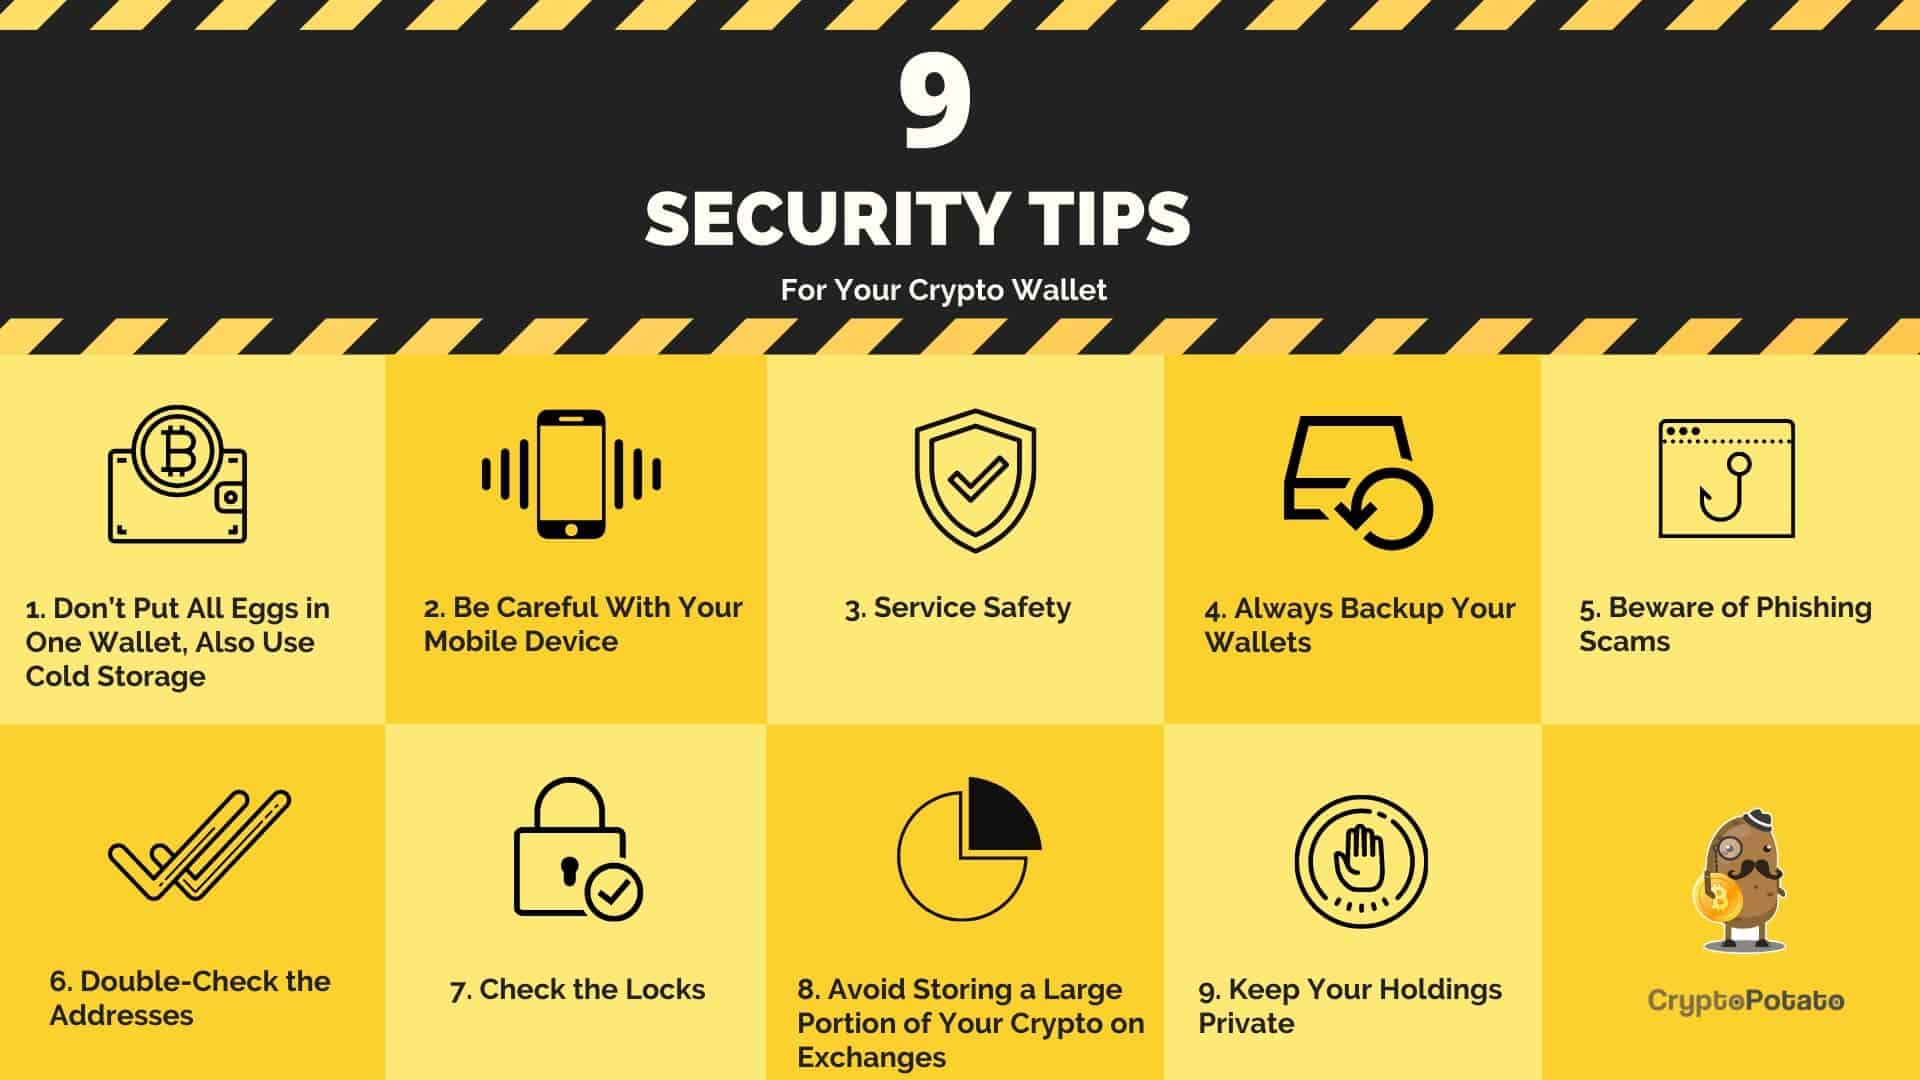 9 tips to secure your crypto wallet